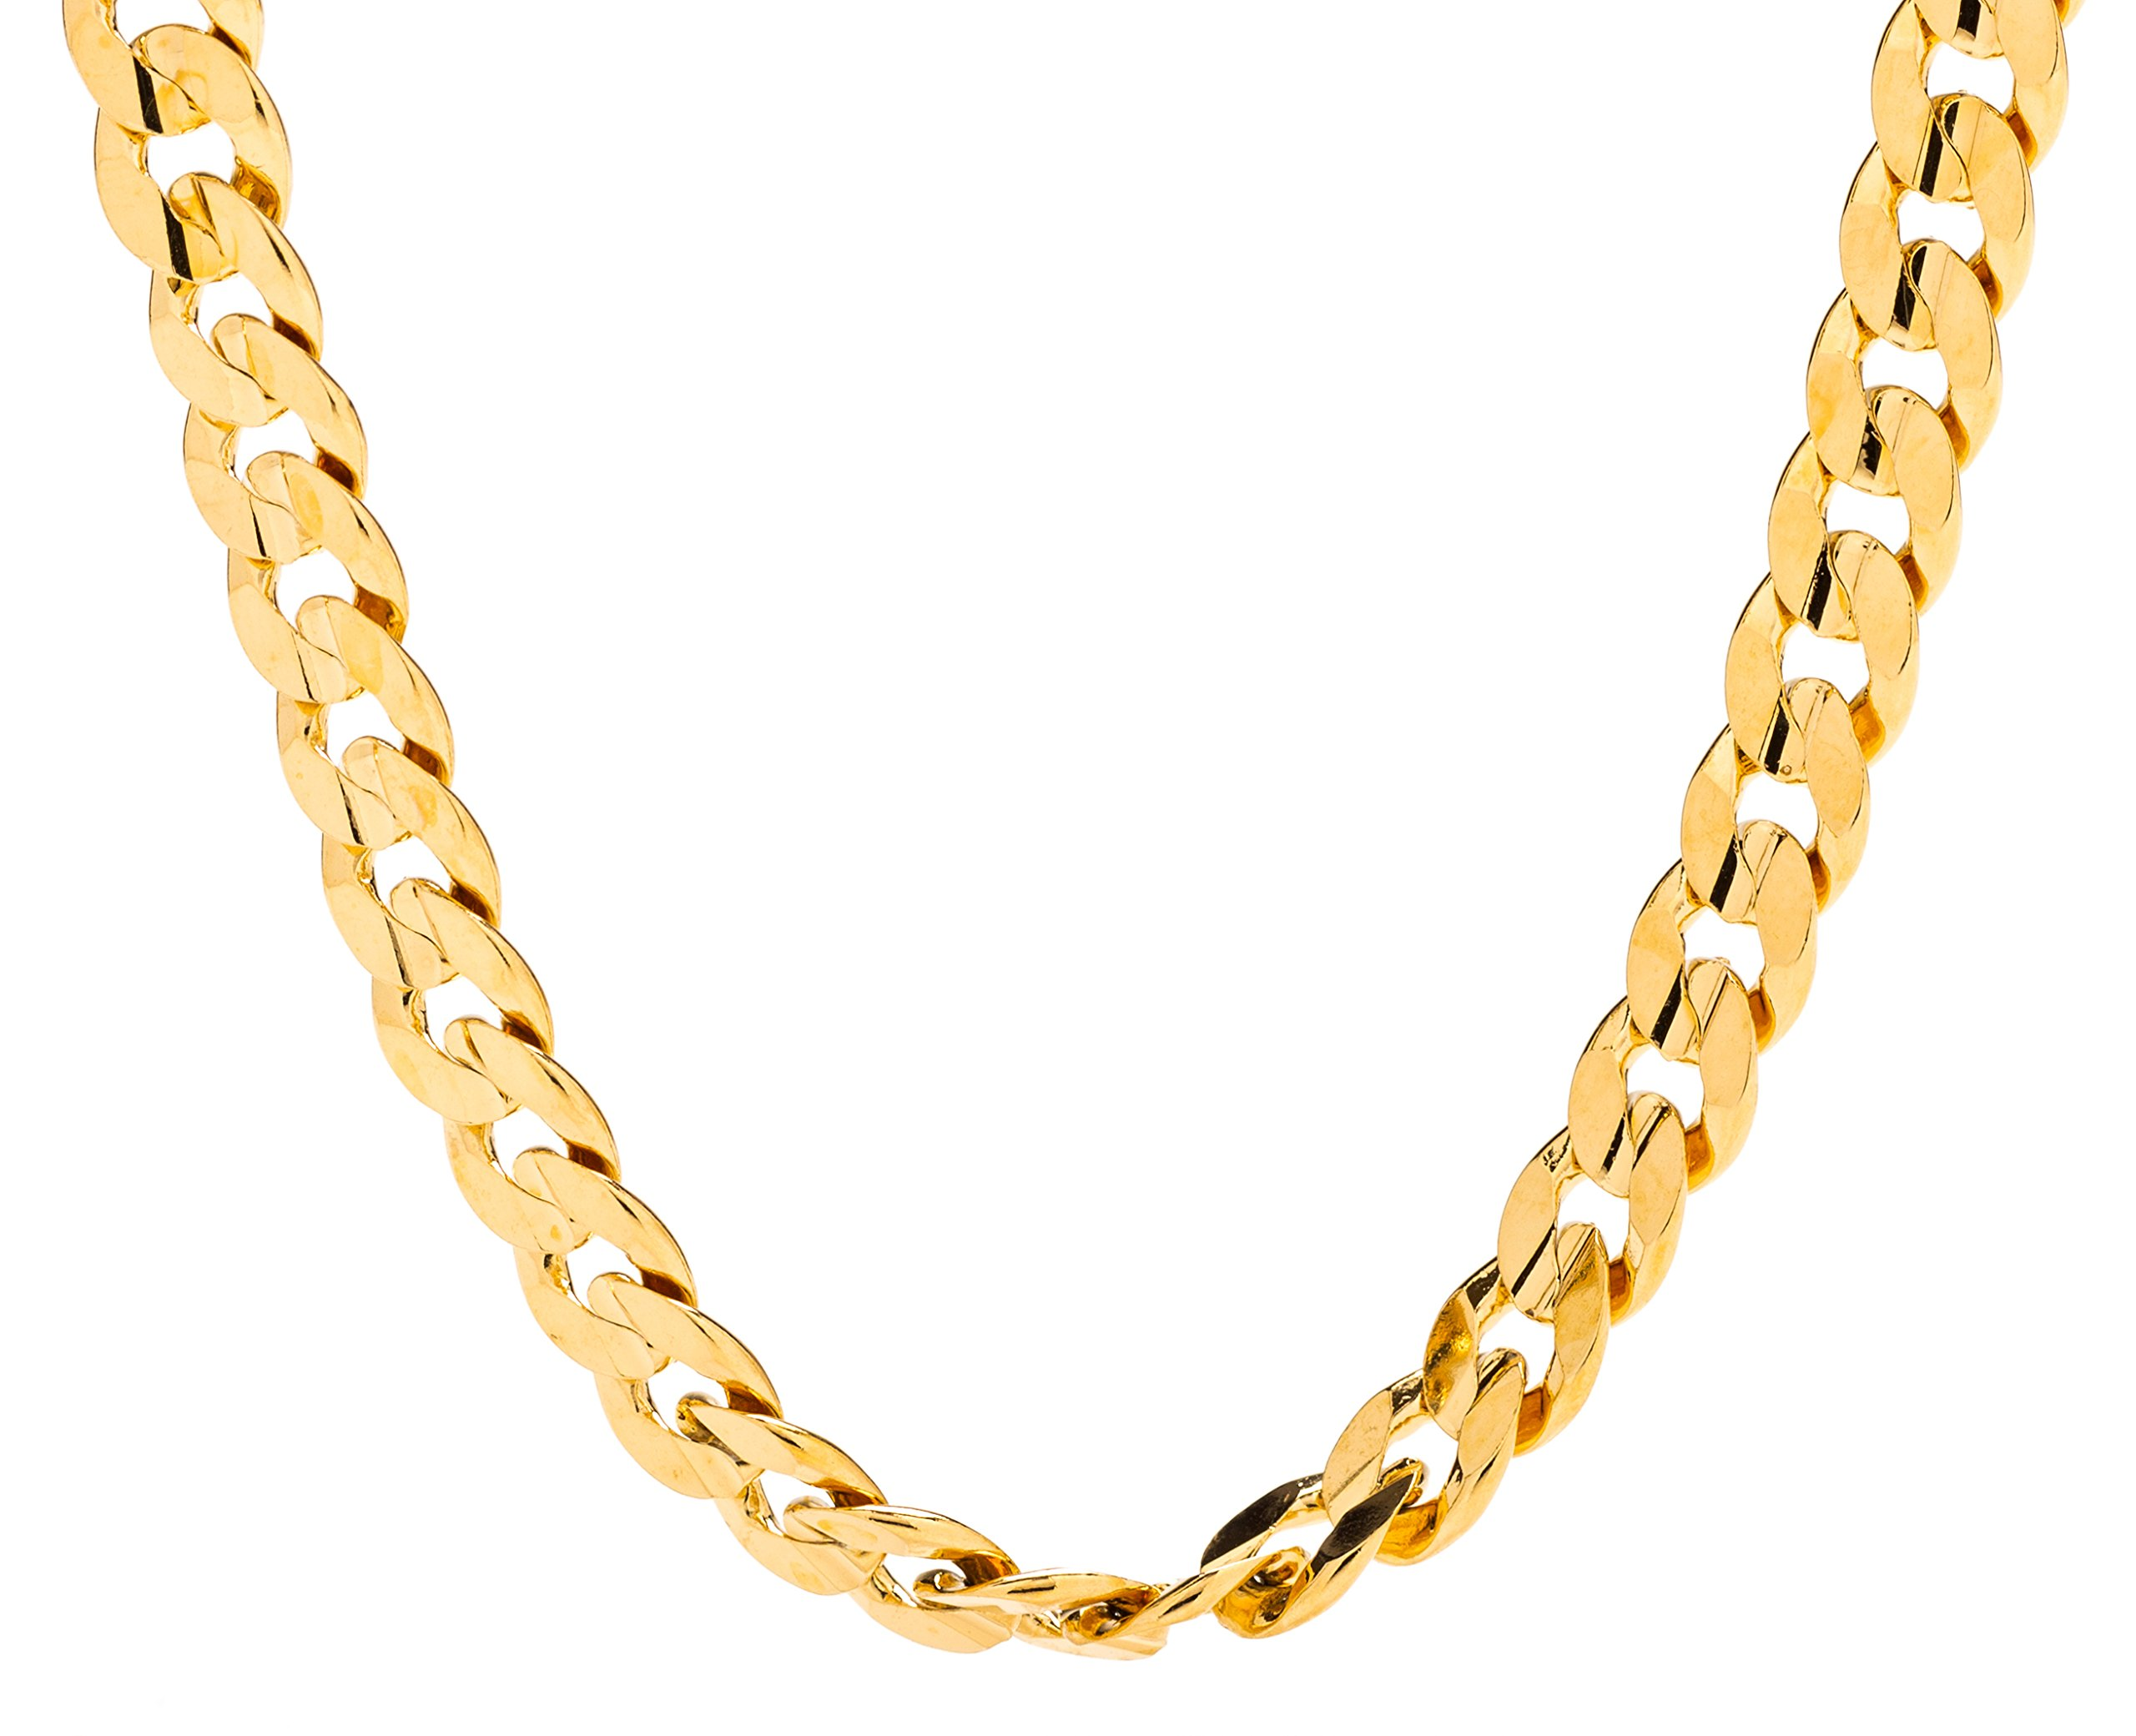 Lifetime Jewelry Cuban Link Chain, 6MM, 24K Gold Over Semi Precious Metals, Diamond Cut, Premium Fashion Jewelry Necklace, Designed to Resist Tarnishing, LIFETIME REPLACEMENT GUARANTEE, 22 Inches